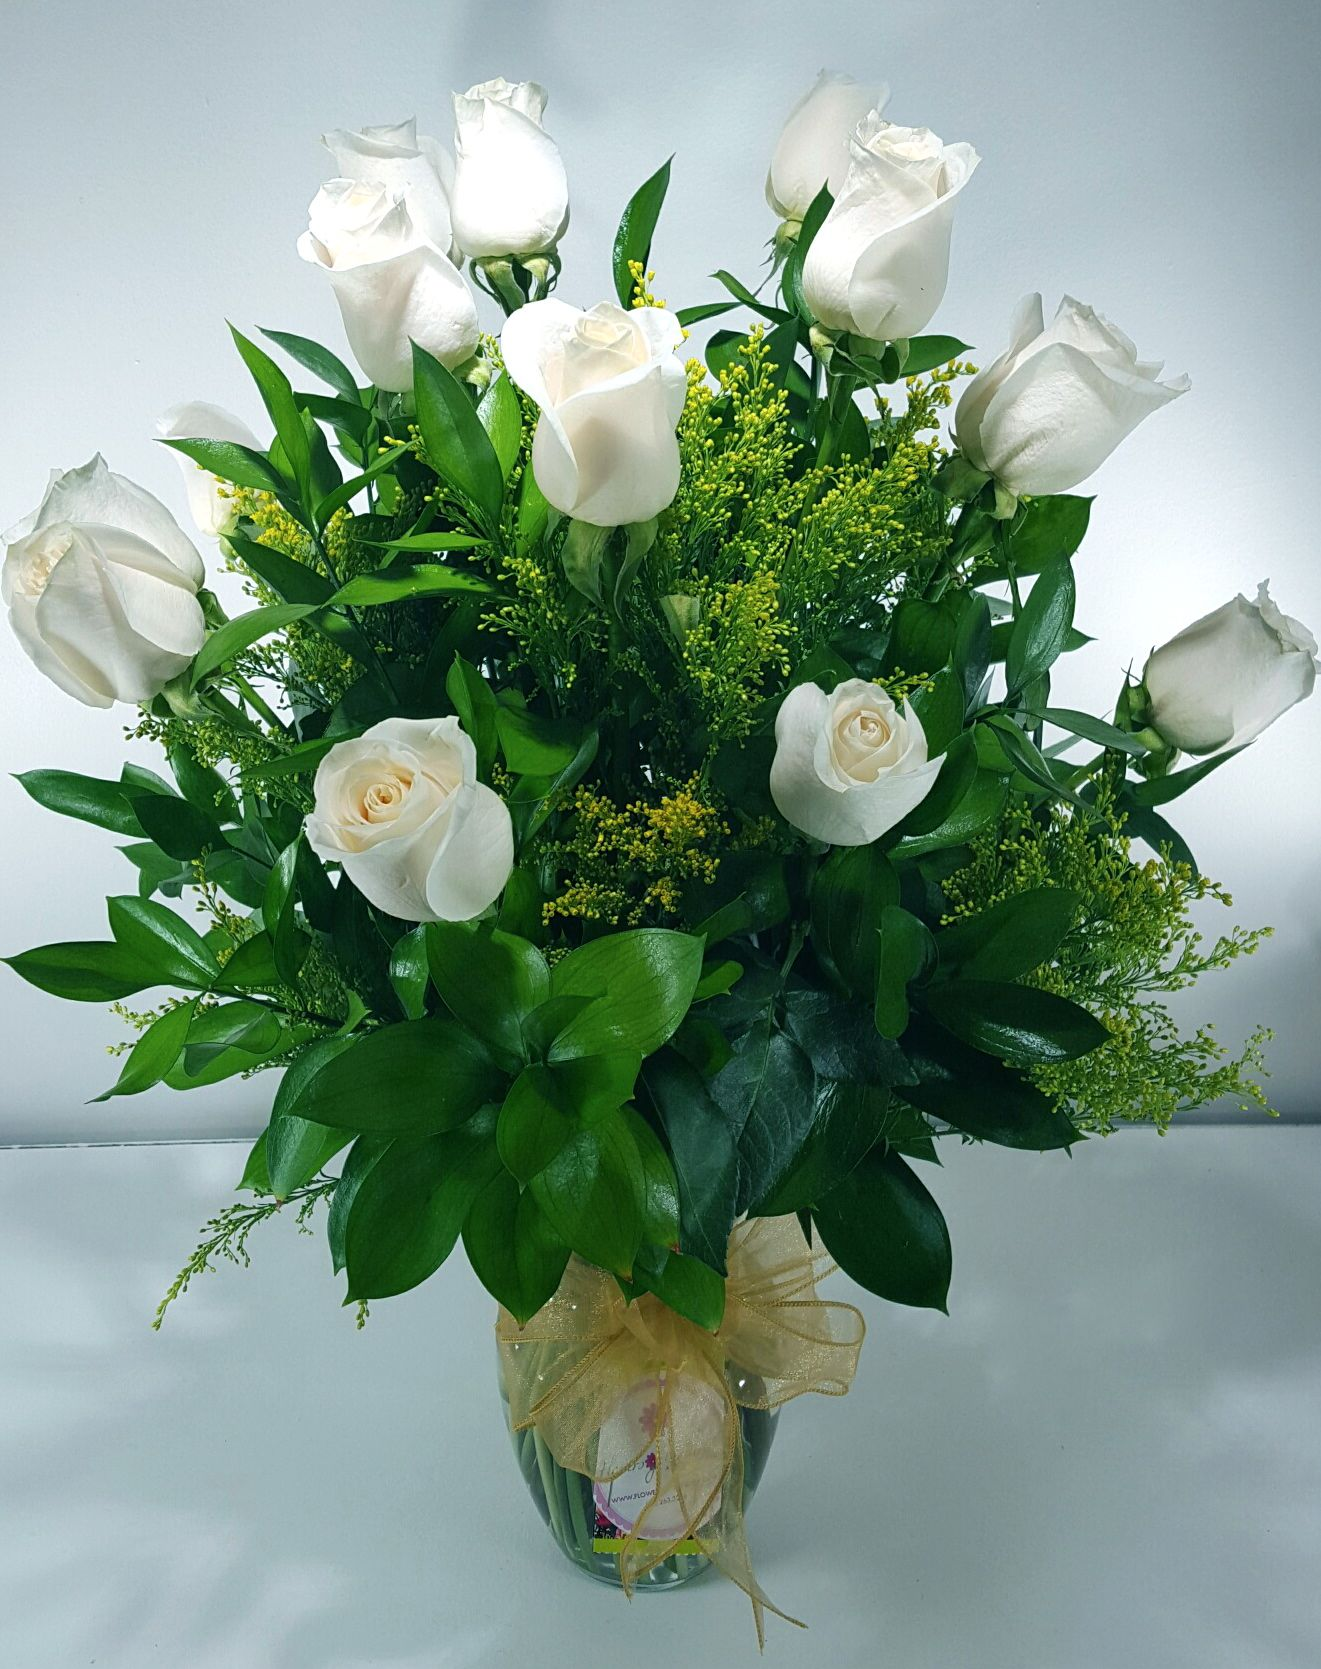 Snow White Roses (Dozen)